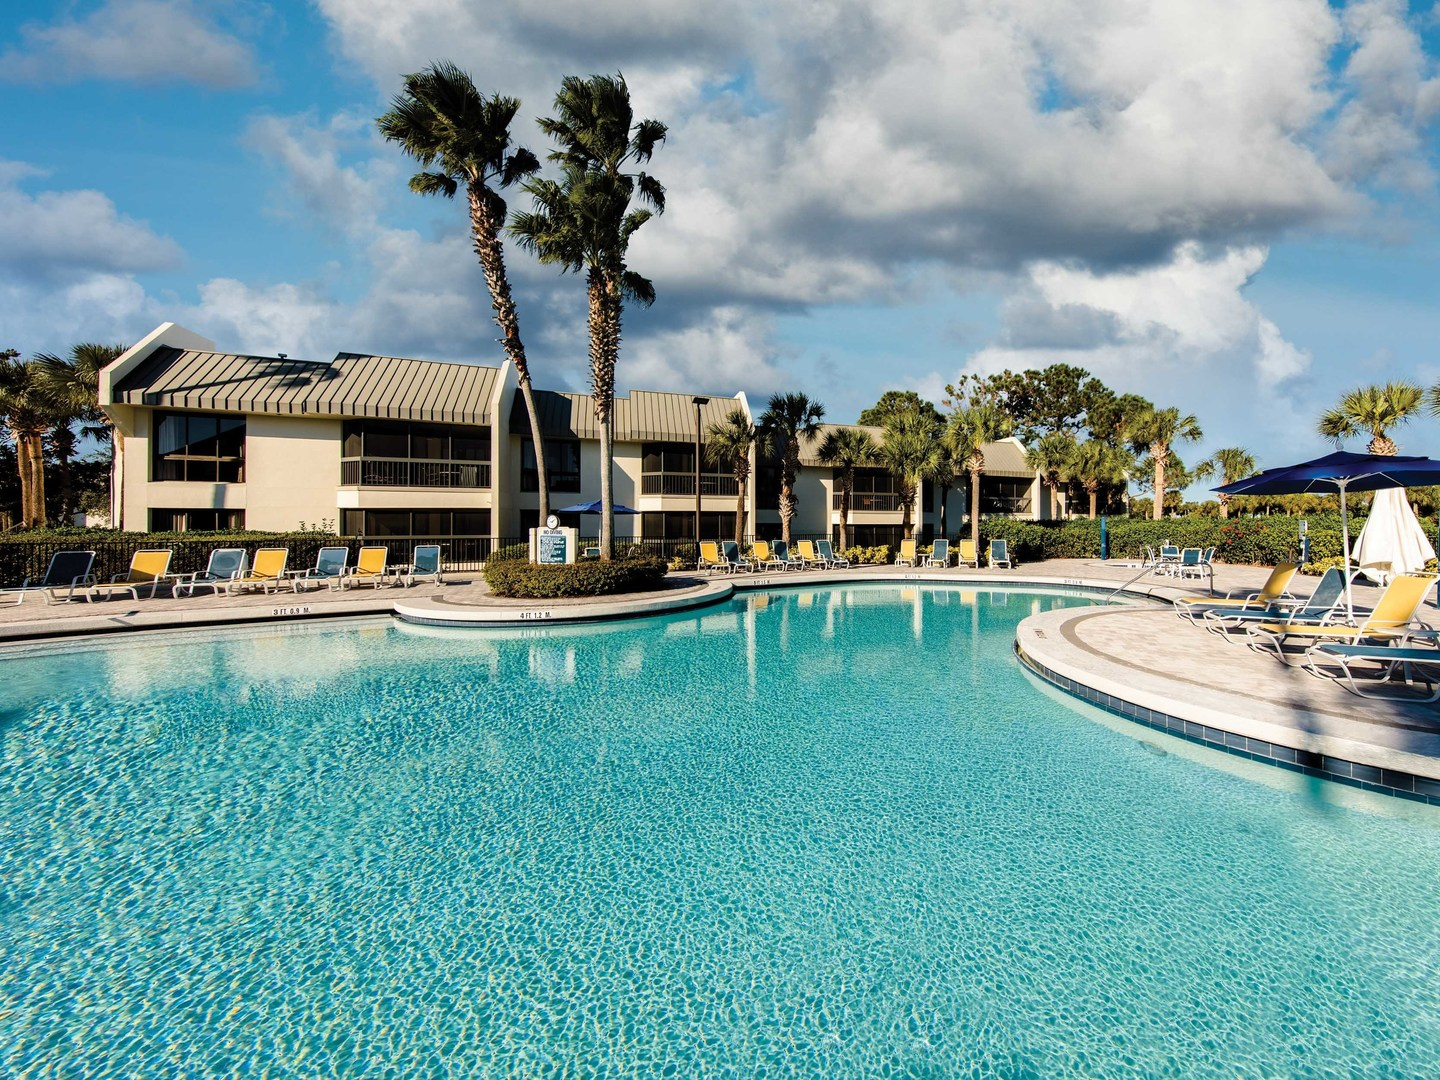 Marriott's Sabal Palms Main Pool. Marriott's Sabal Palms is located in Orlando, Florida United States.